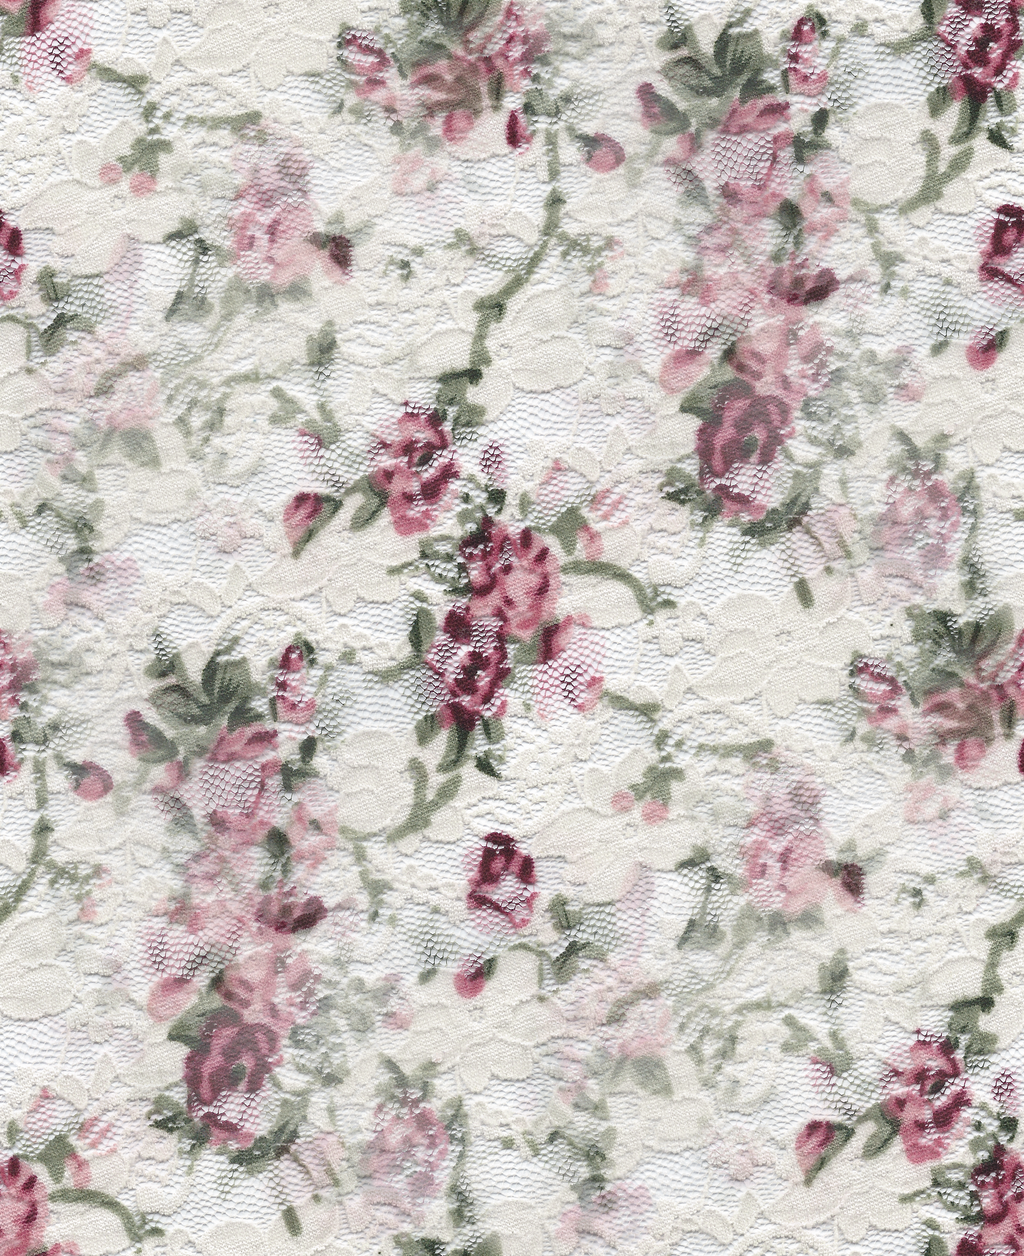 Seamless Texture Lace Flower STOCK By NathL fr On DeviantArt